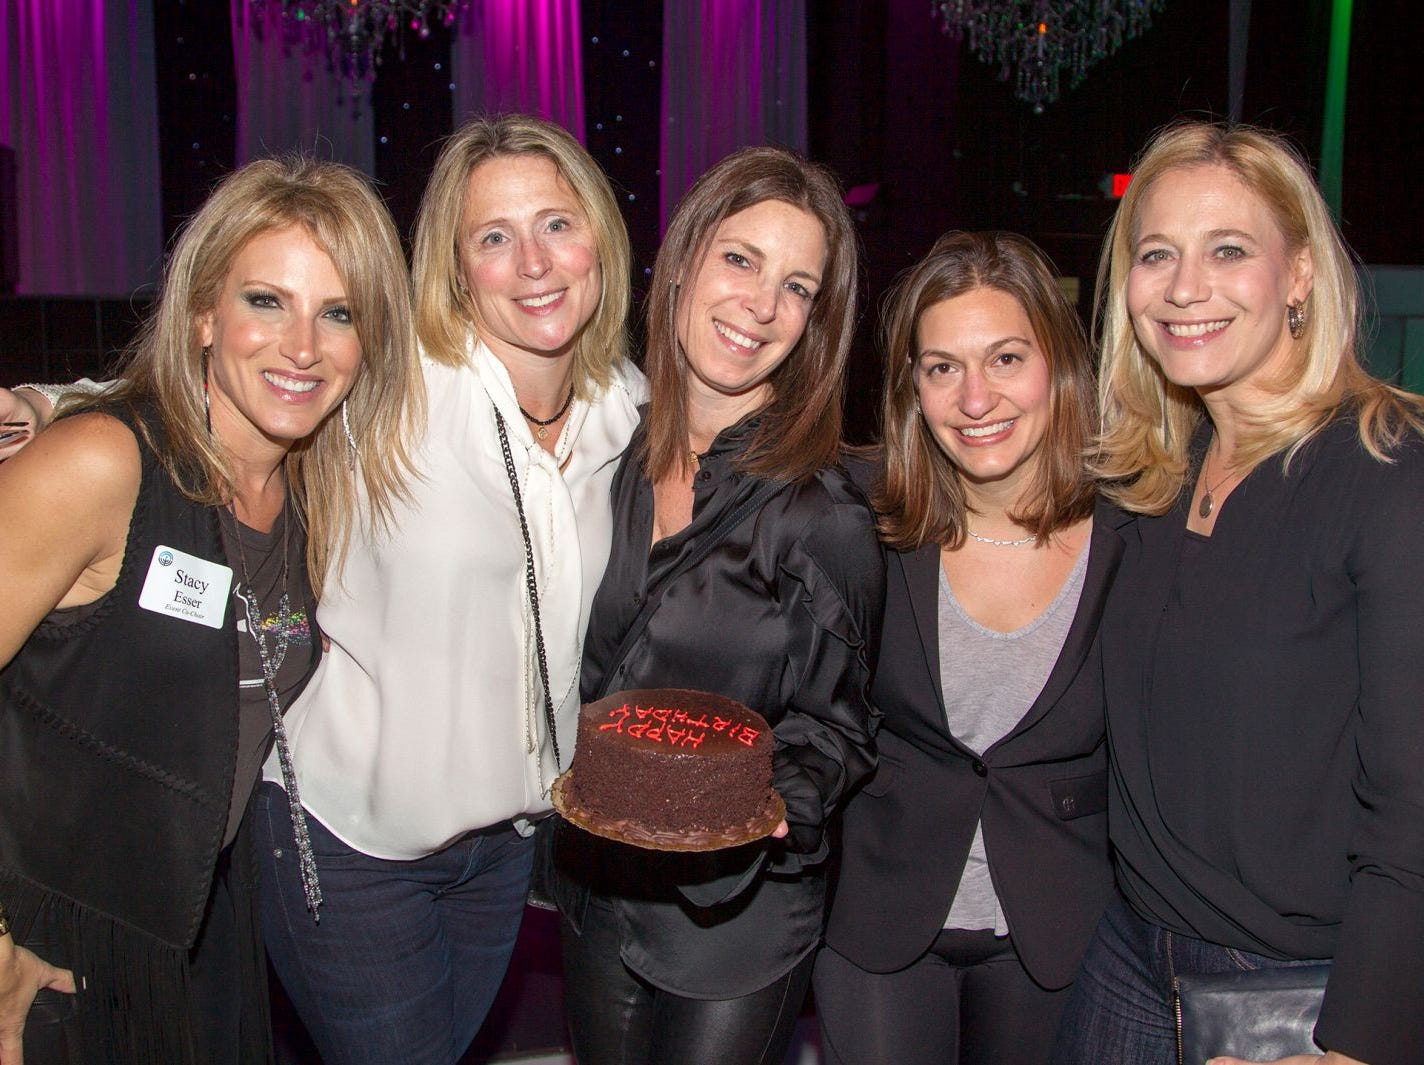 Stacy Esser, Allison Lavi, Claudia Woda, Sharon Greidman, Heather Glassman. Jewish Federation of Northern New Jersey held its first Girl's Night Out dance party at Space in Englewood. 01/24/2019